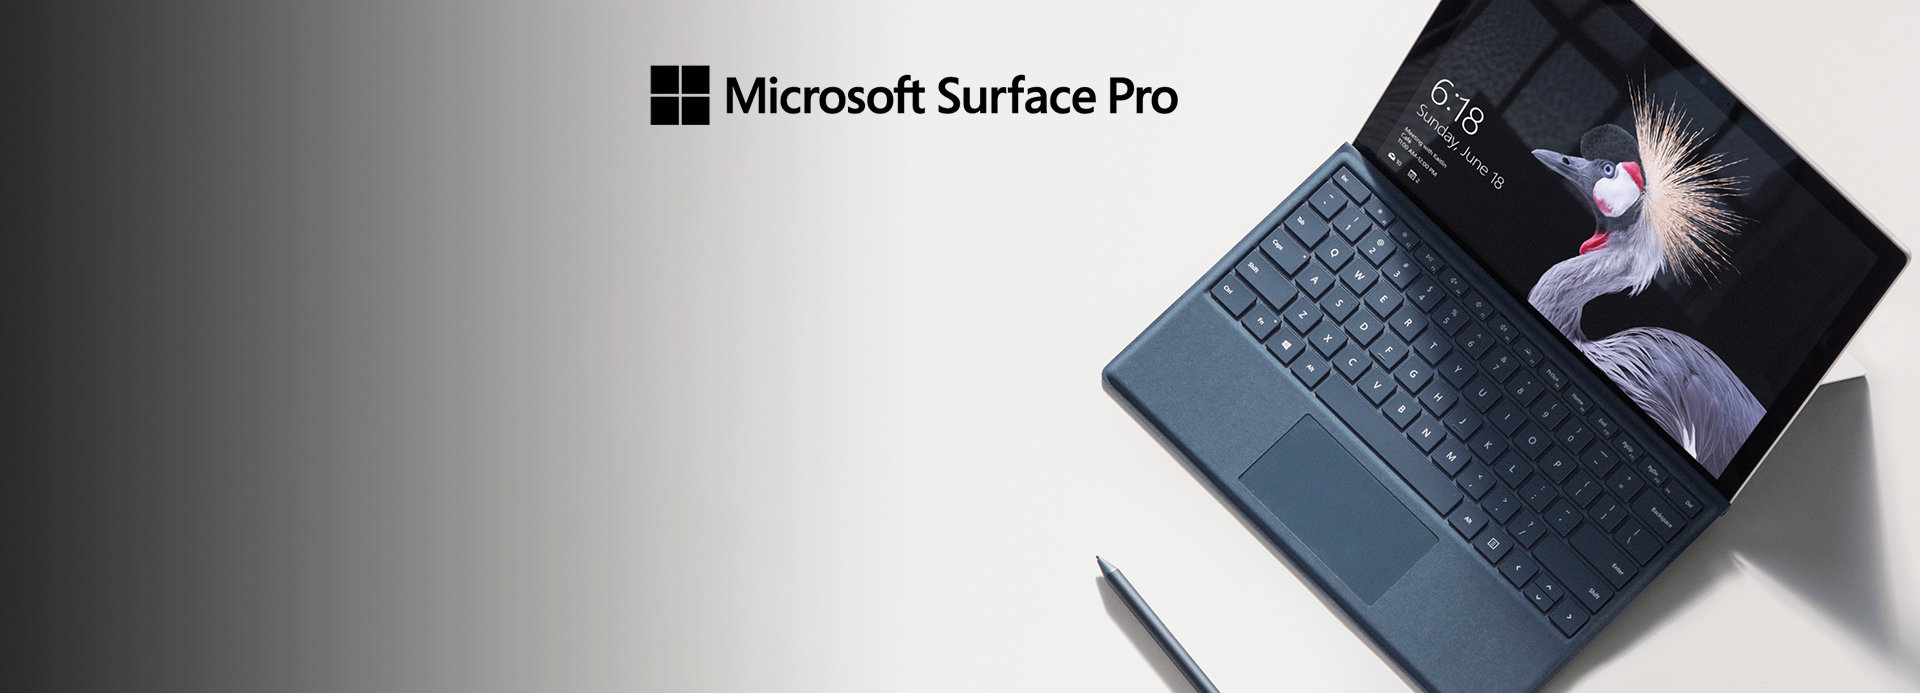 Introducing the new Microsoft Surface Pro.